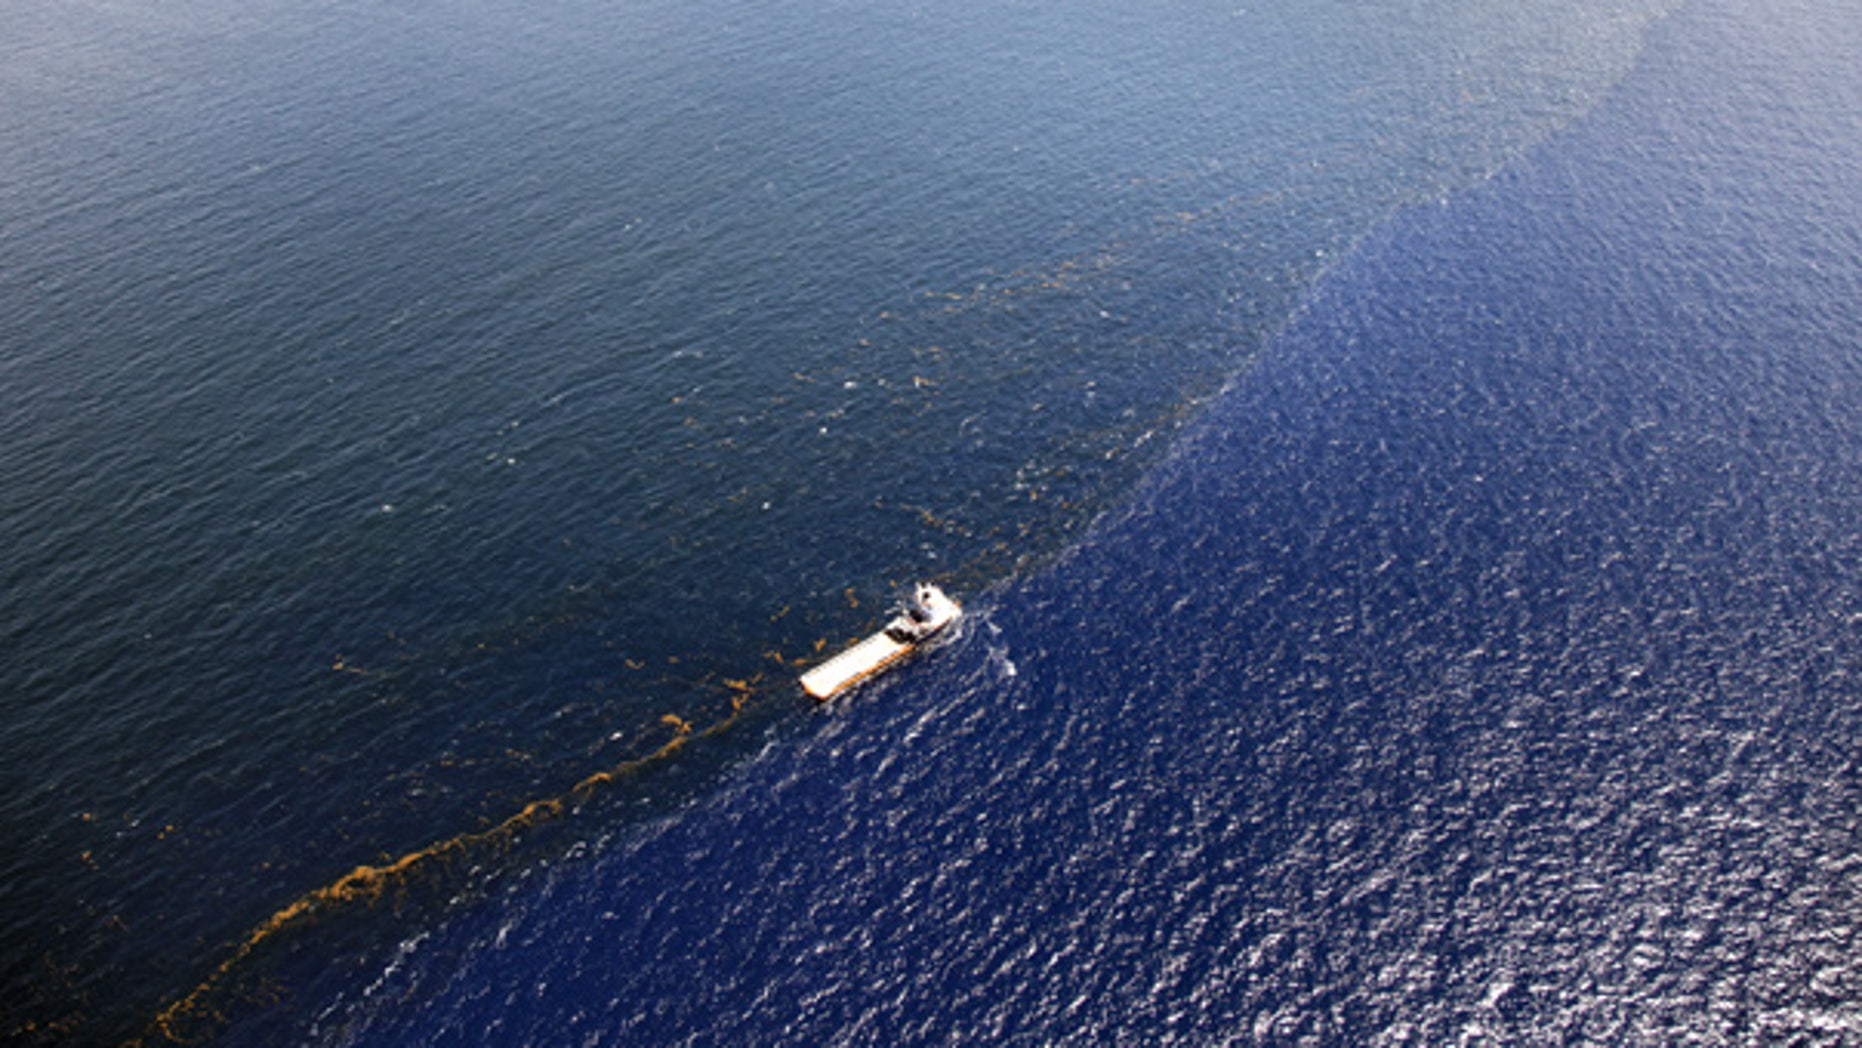 July 26: A response vessel is seen along a line of emulsified oil between the Deepwater Horizon spill site and the Louisiana coast.